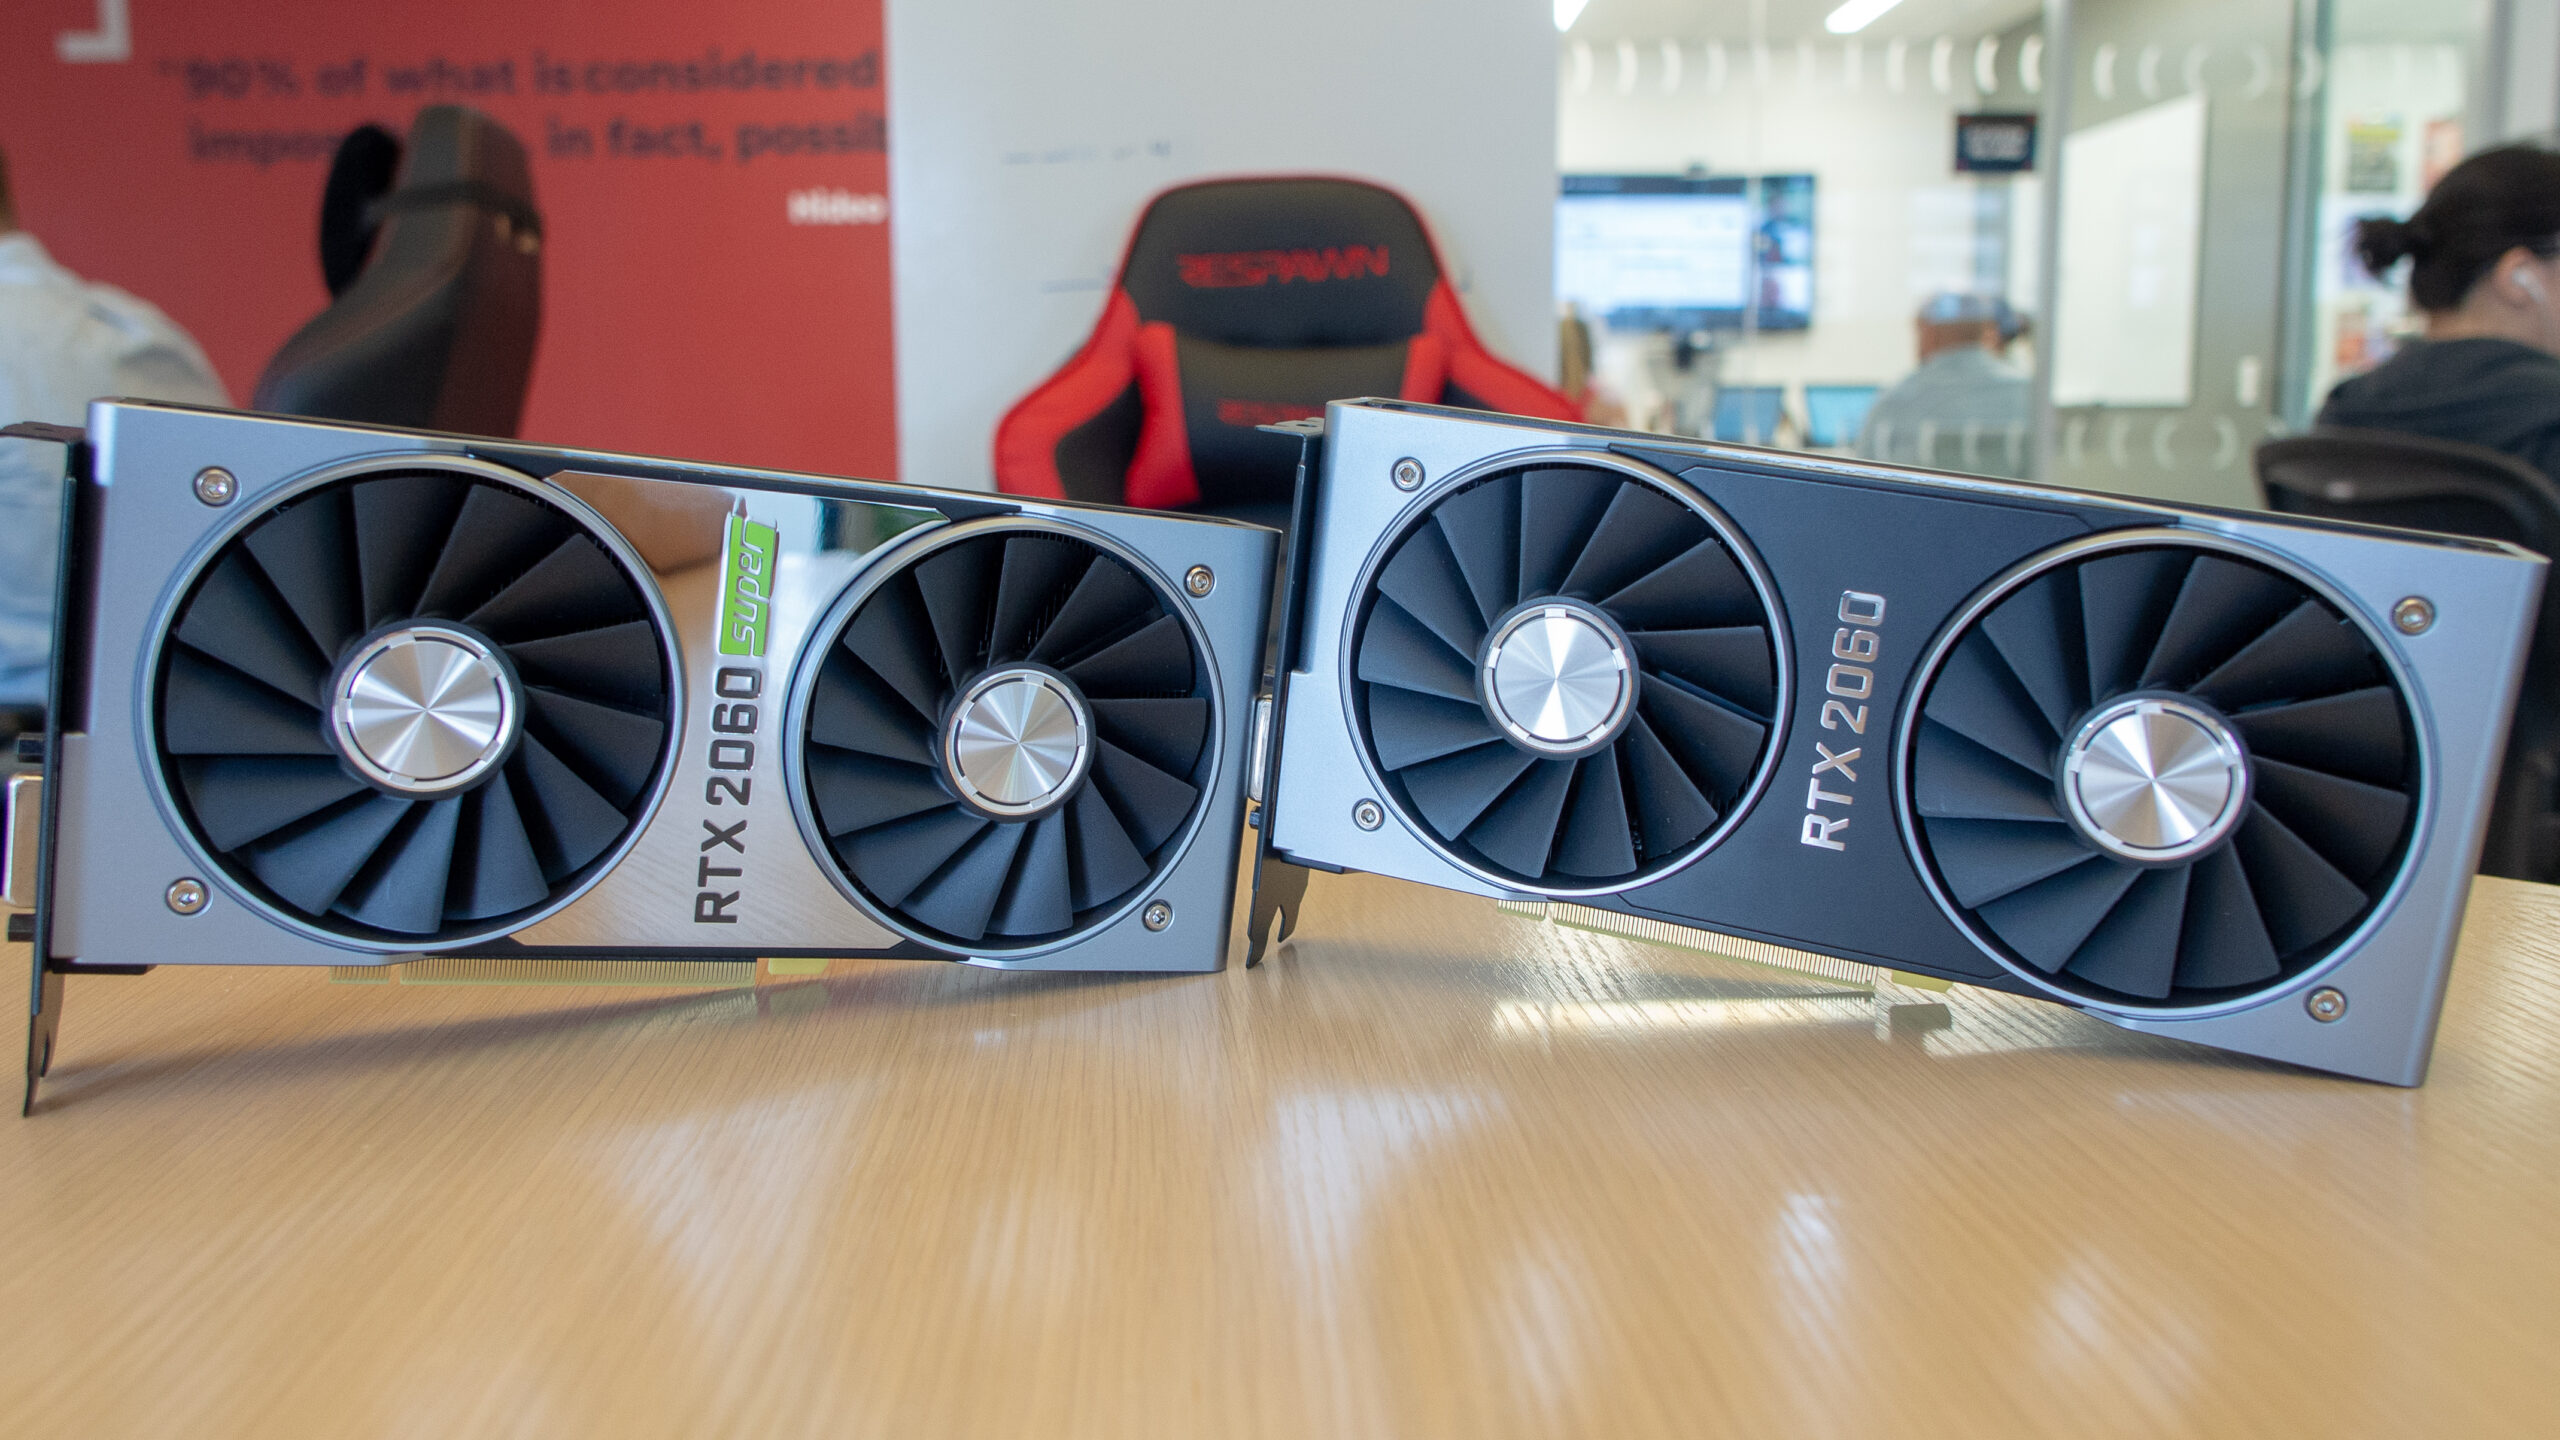 best-1080p-graphics-cards-2021:-the-best-gpus-for-1080p-gaming